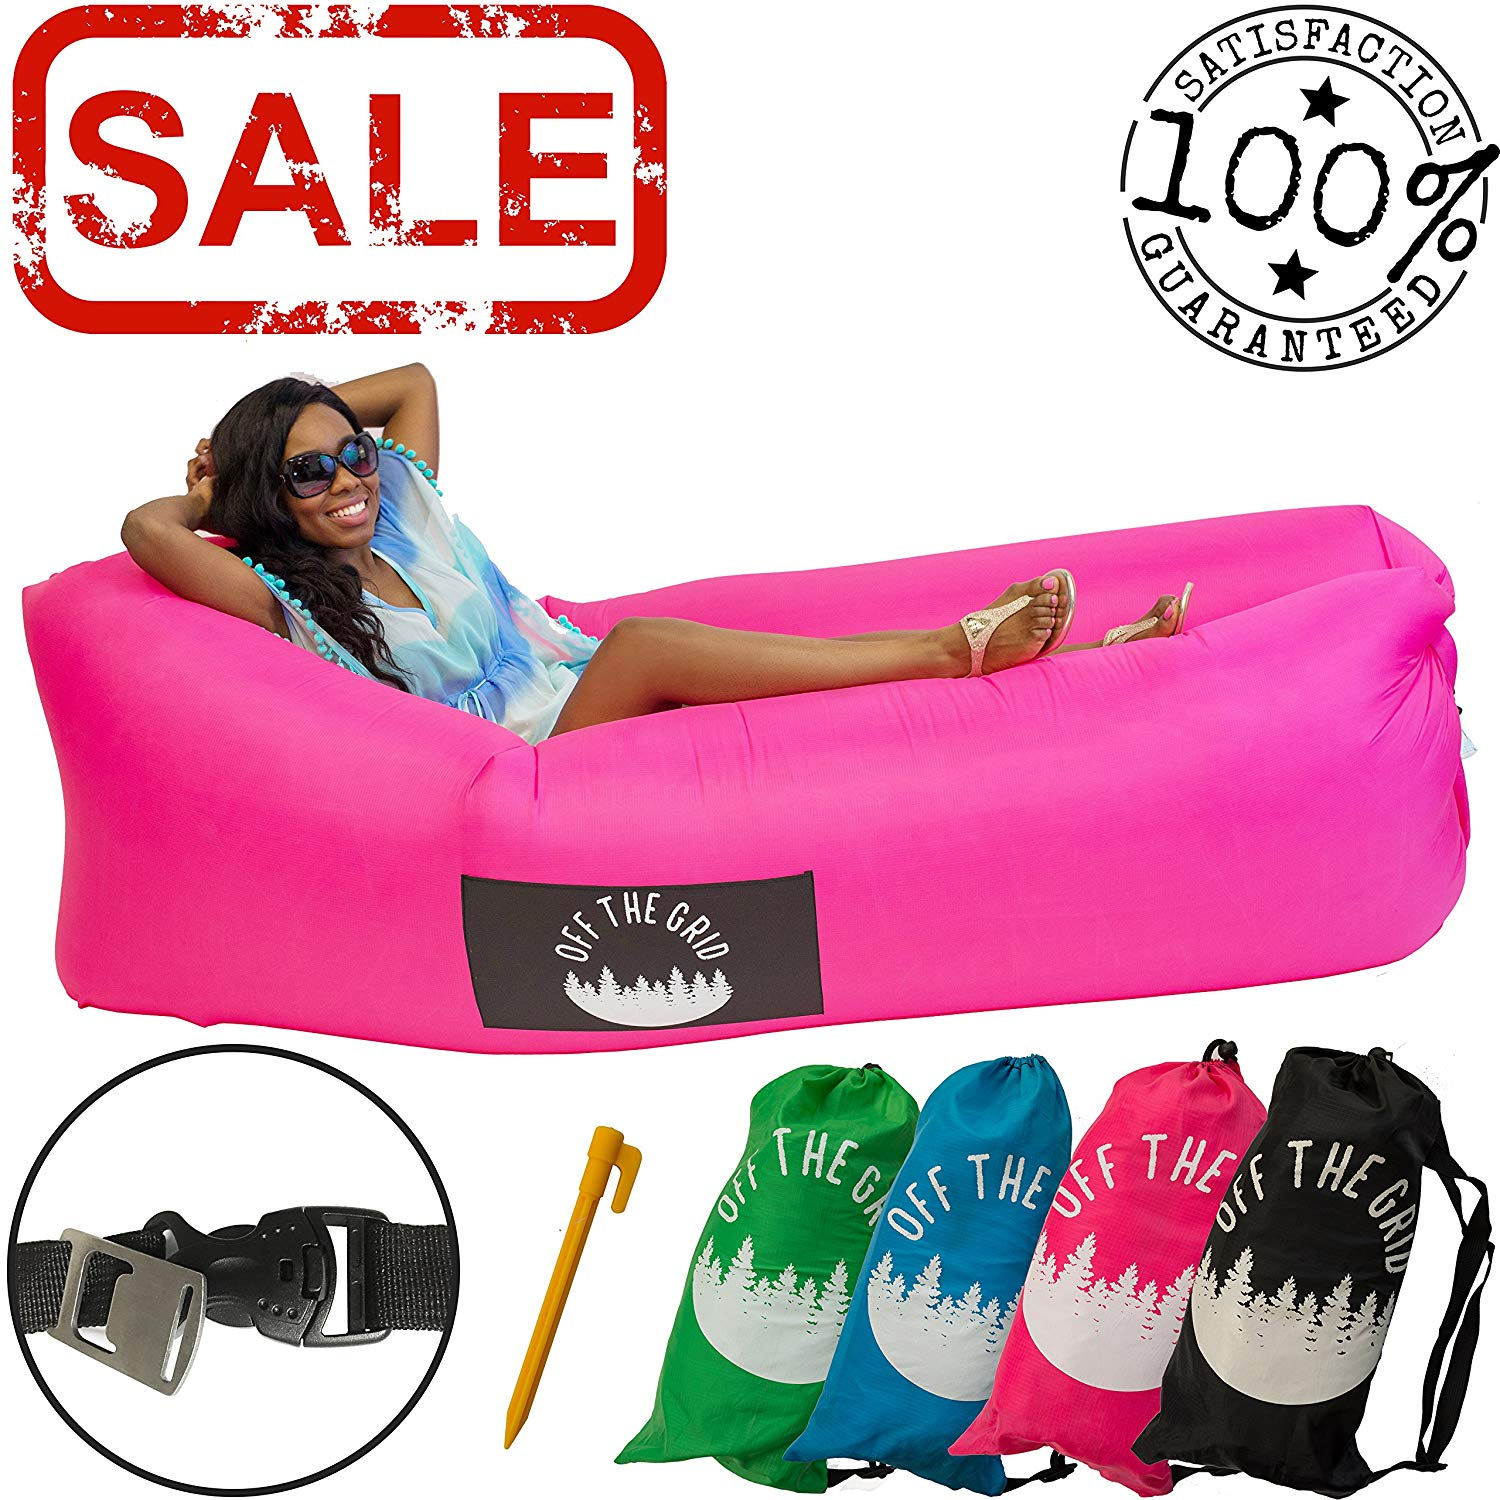 Review of Off the Grid Inflatable Lounger - Air Sofa Wind Chair Hammock - Floating/Portable Bed